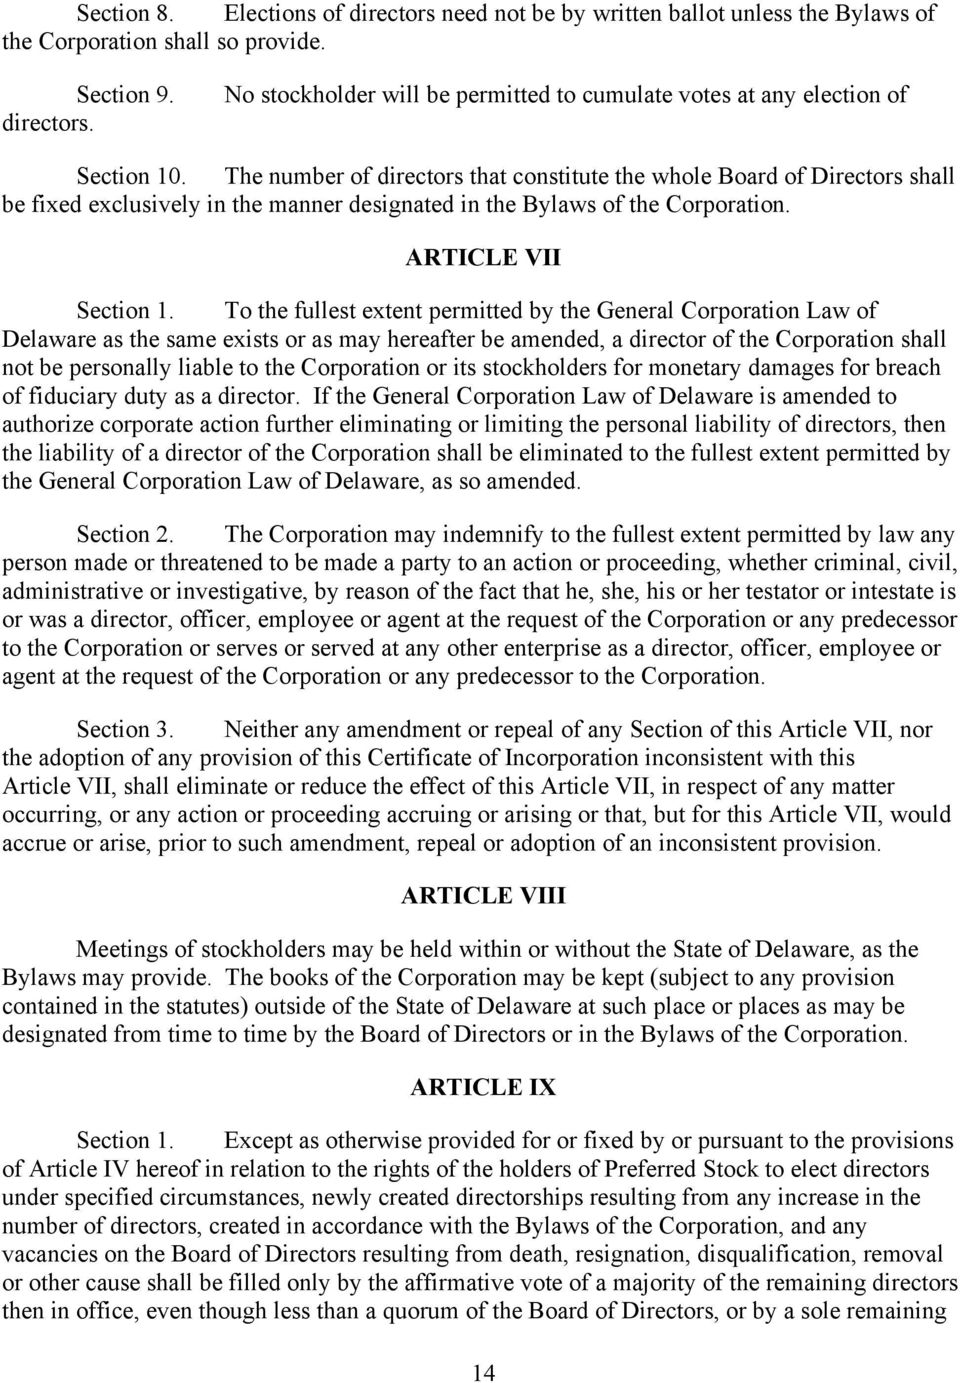 To the fullest extent permitted by the General Corporation Law of Delaware as the same exists or as may hereafter be amended, a director of the Corporation shall not be personally liable to the